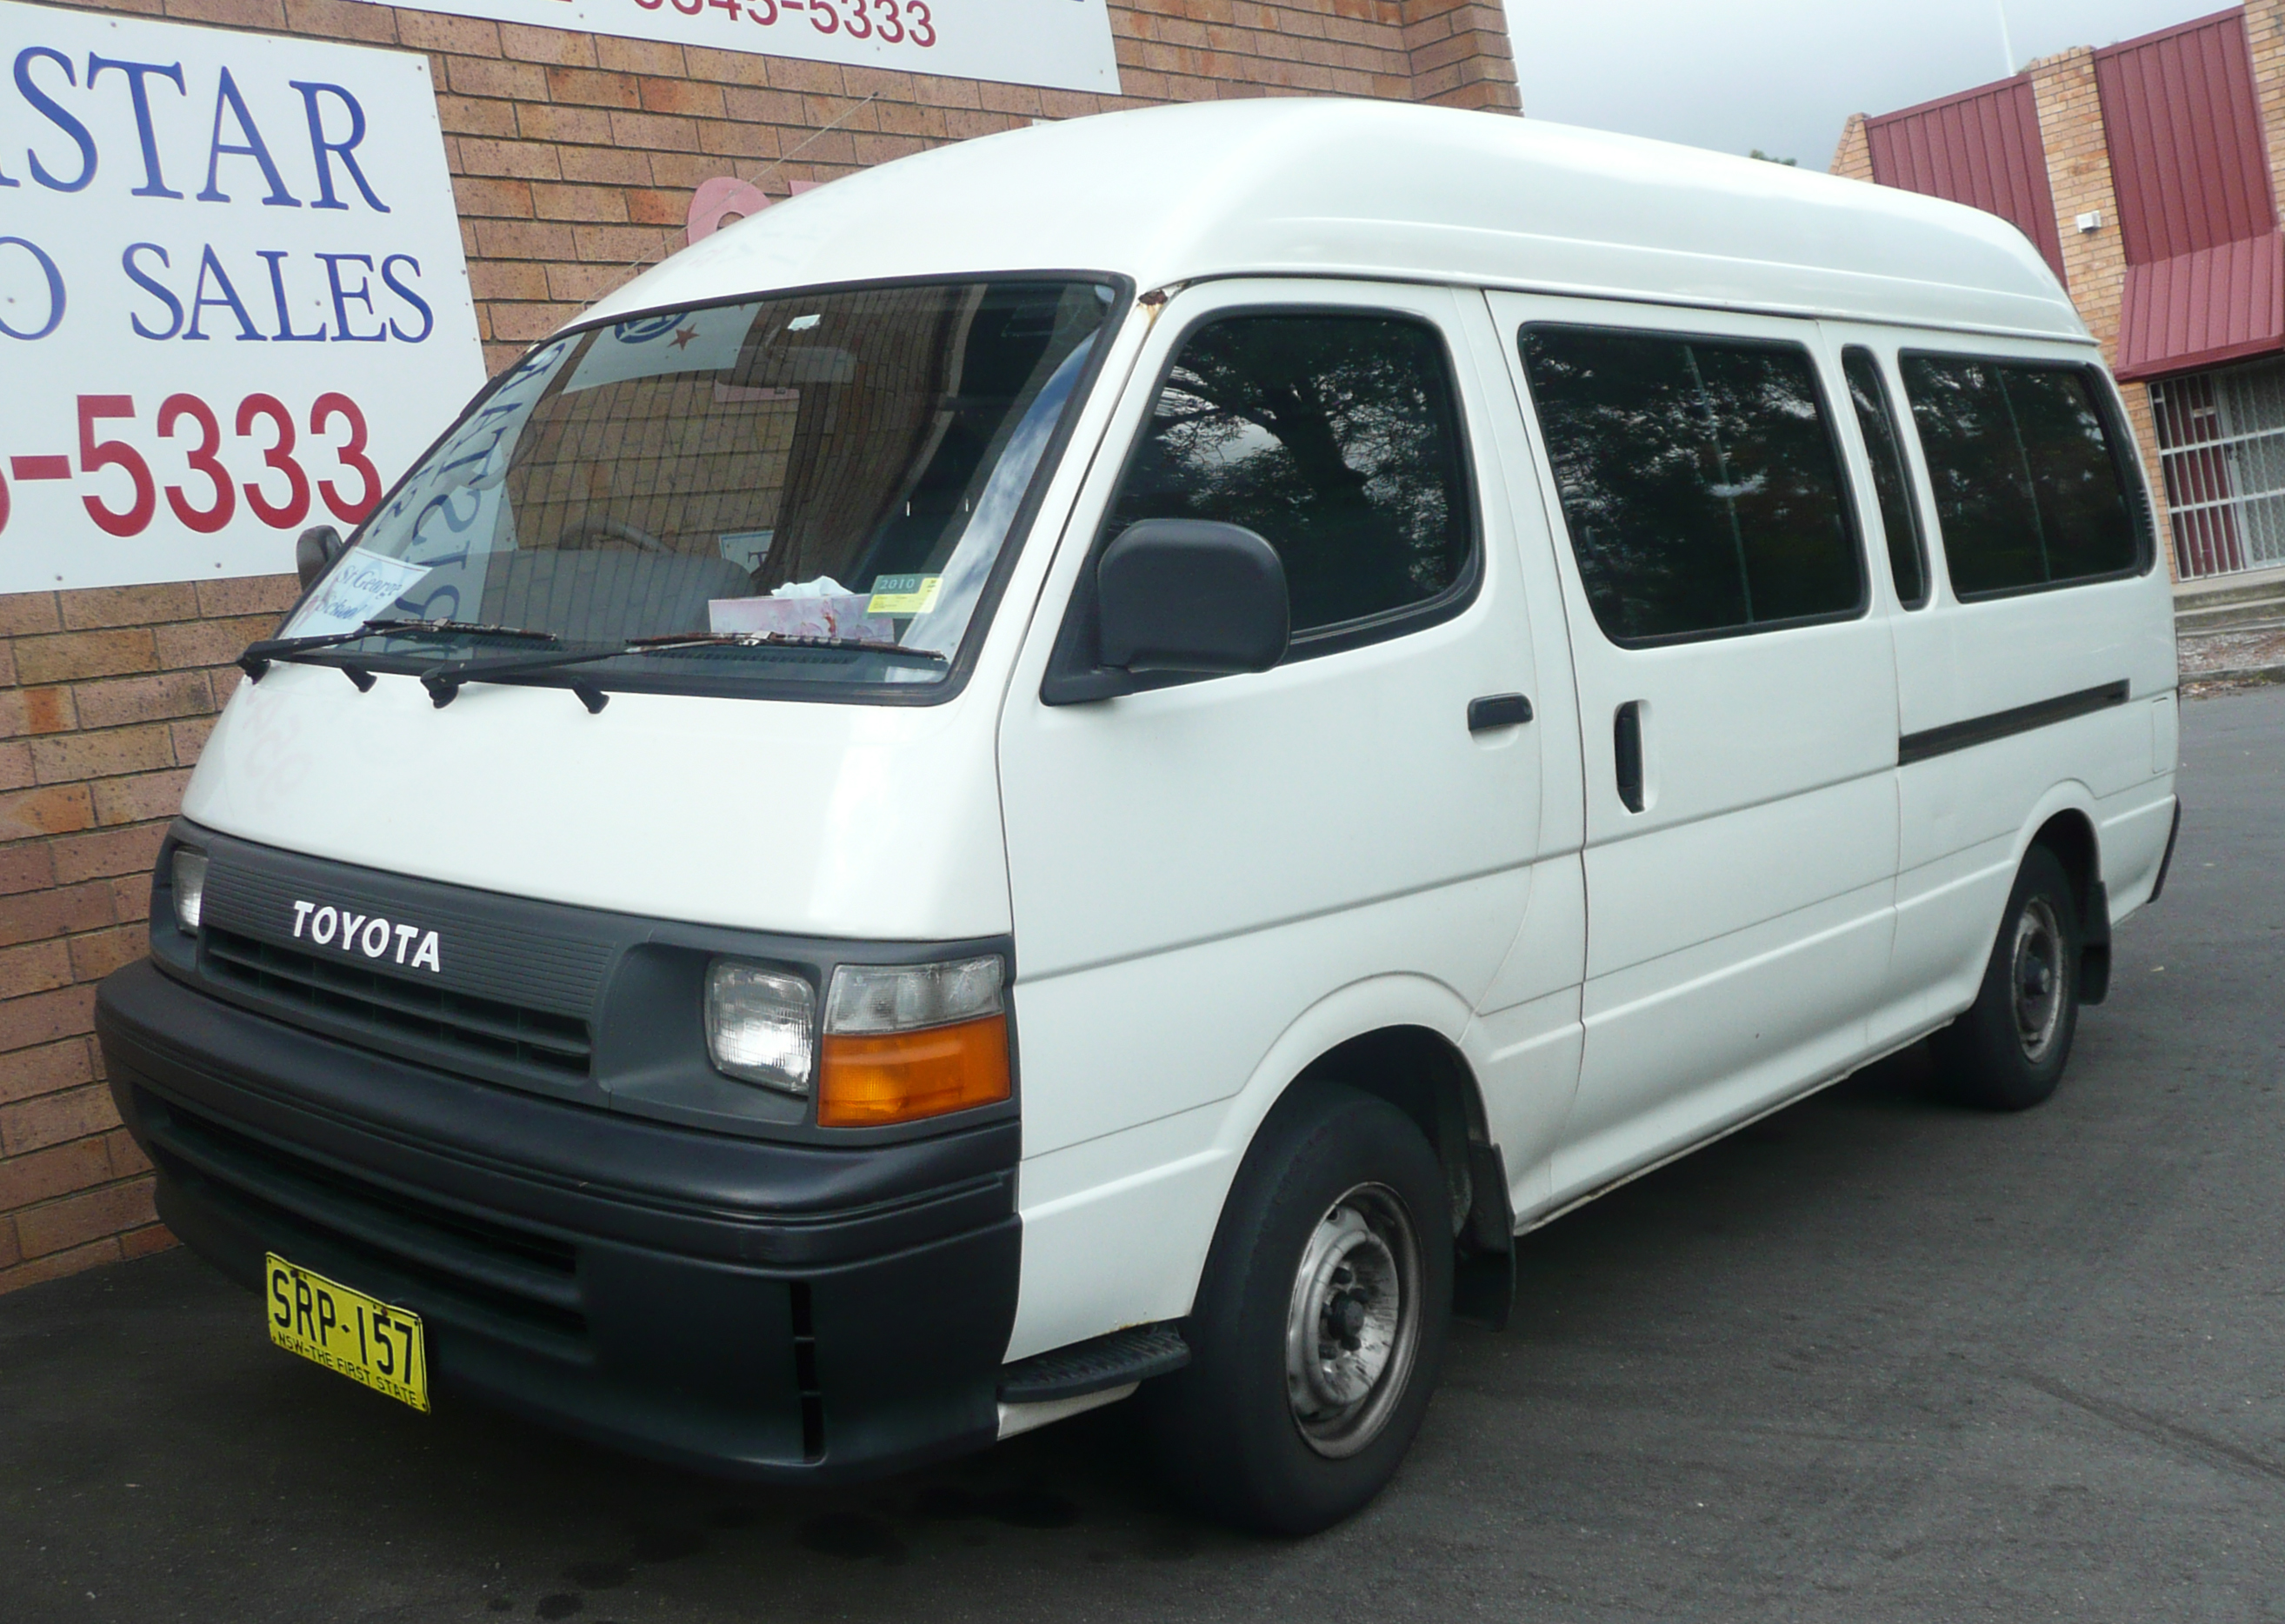 Toyota Hiace 1989 photo - 4